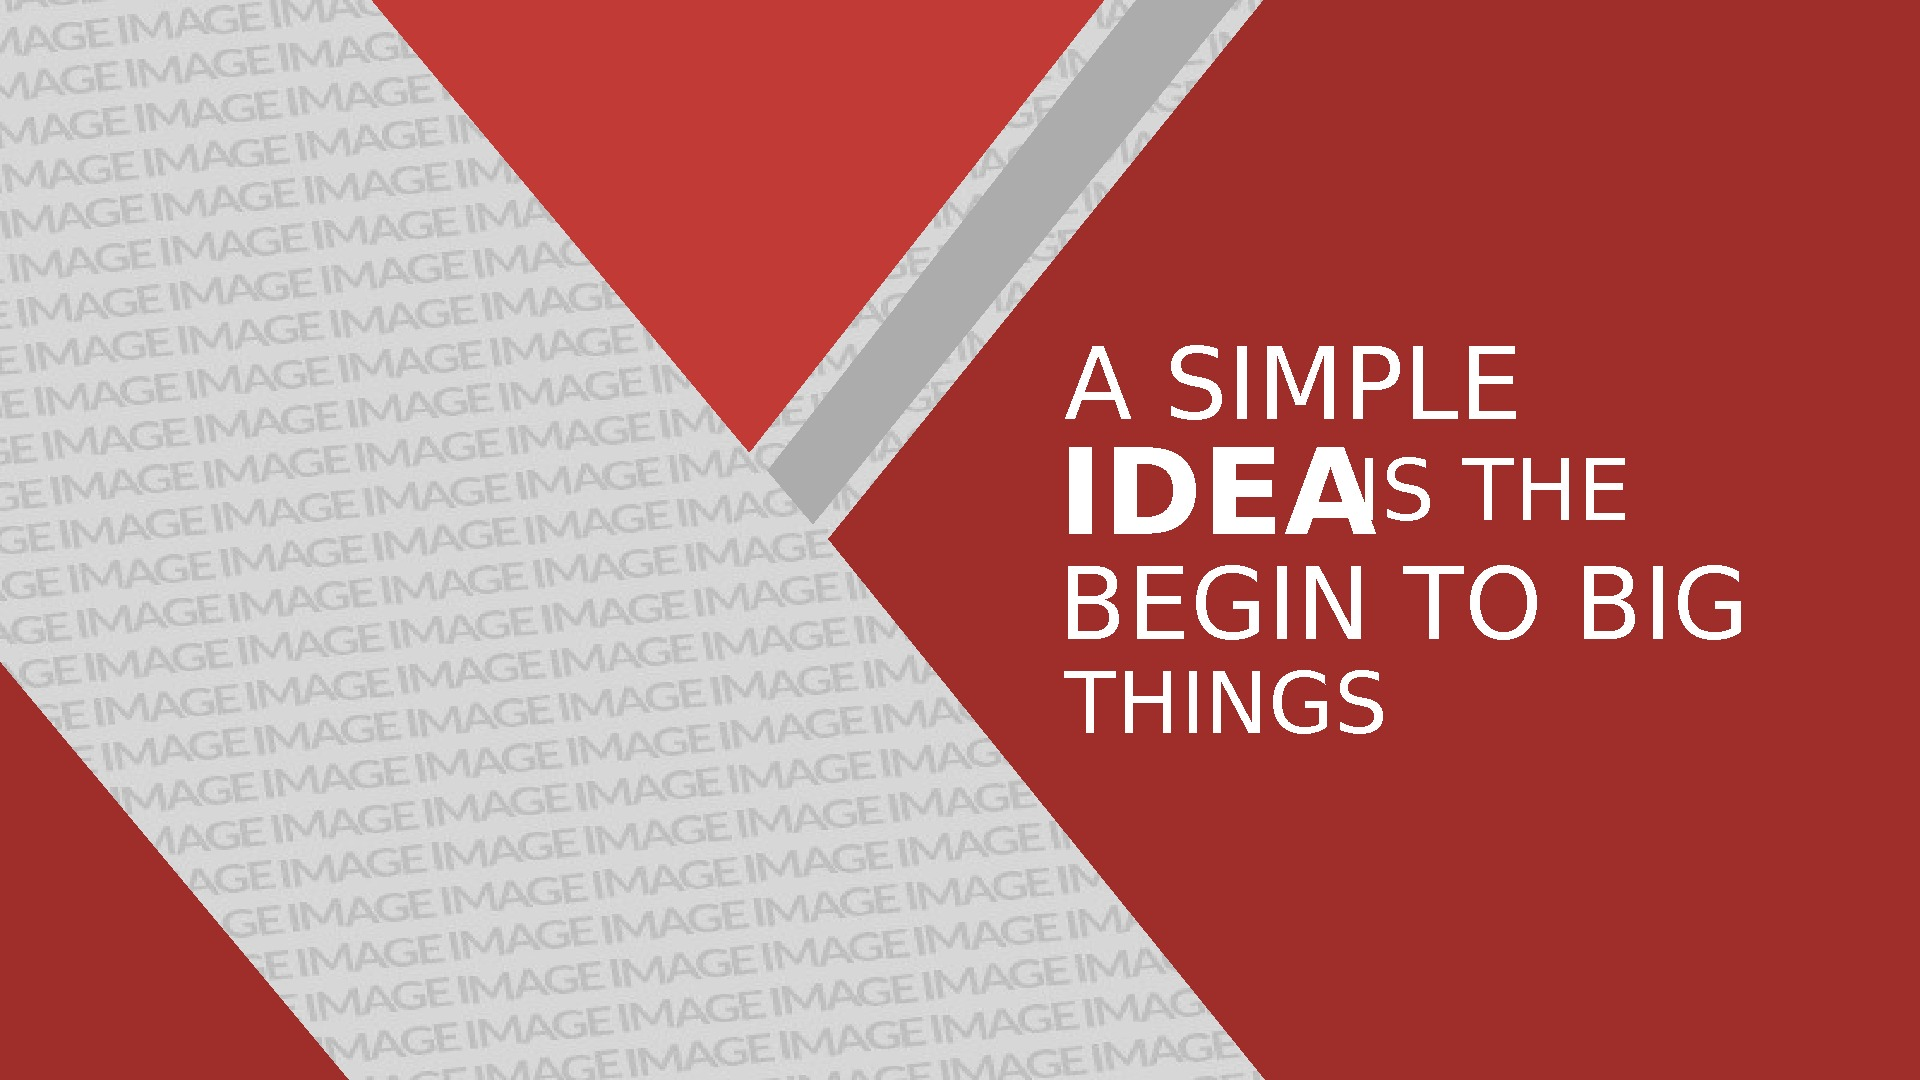 A SIMPLE IDEA IS THE BEGIN TO BIG THINGS